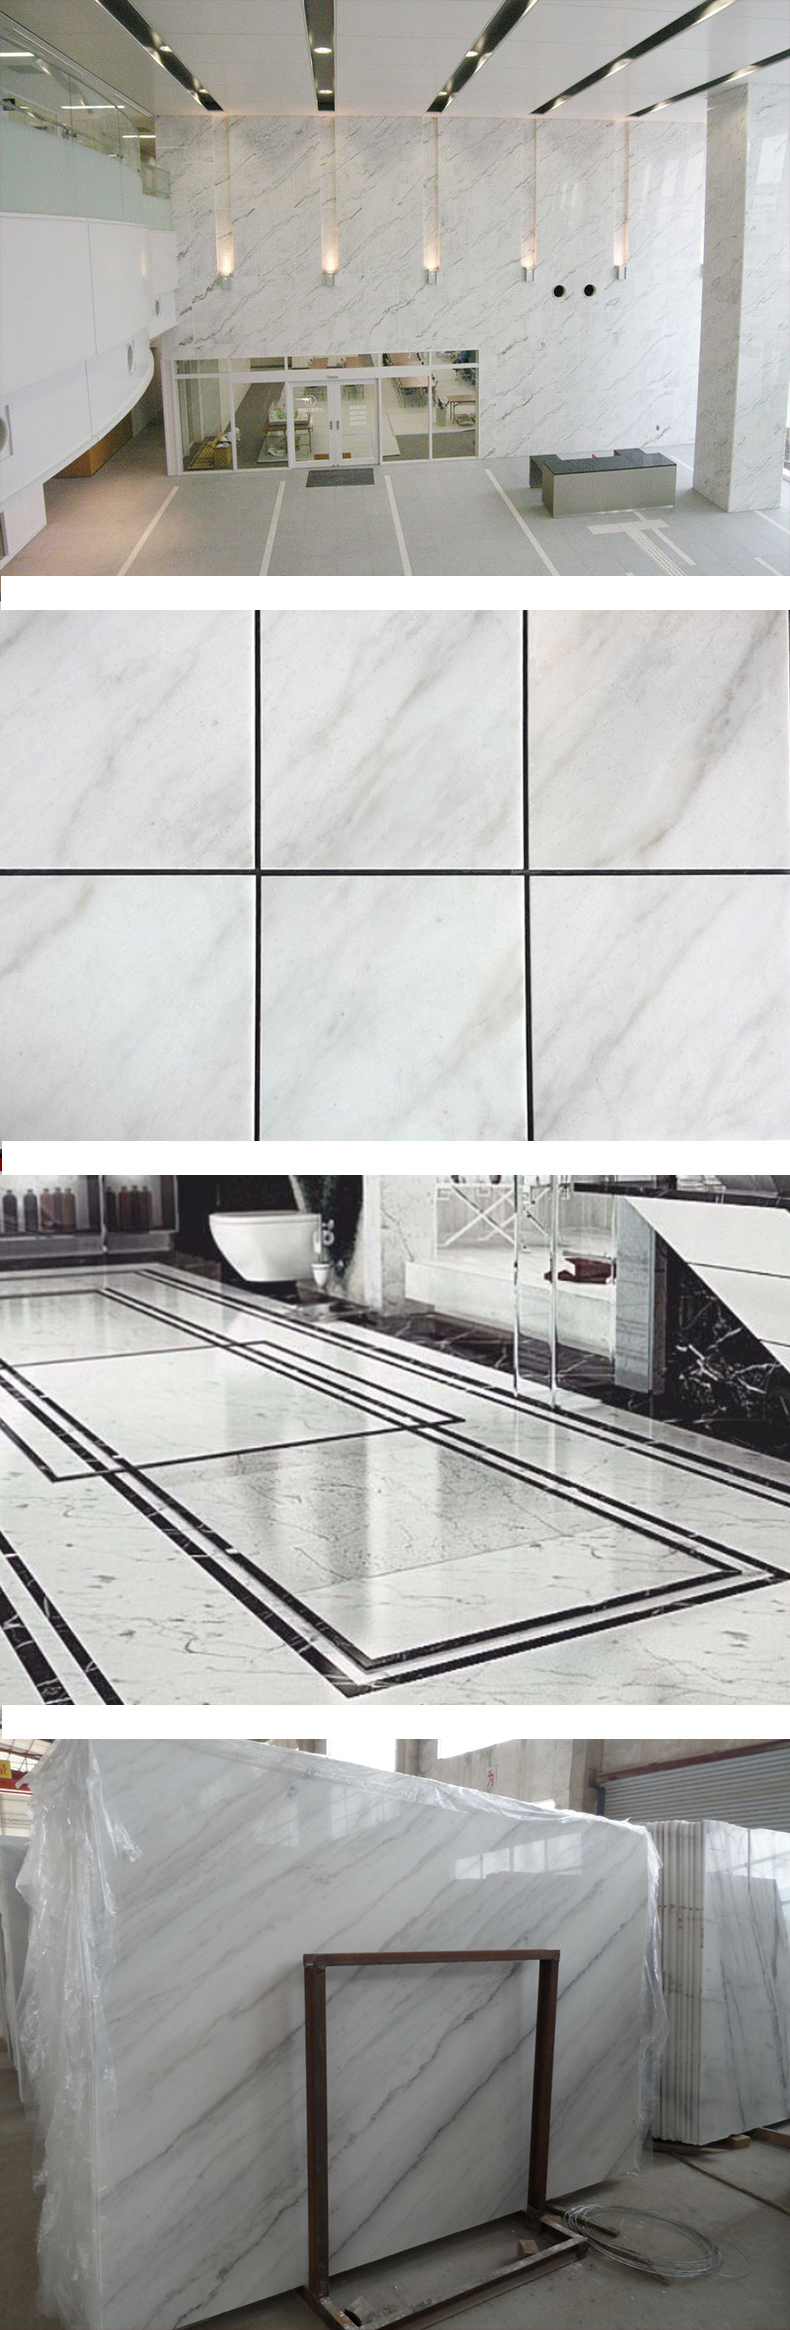 Flooring tile polished guangxi white marble with grey veins